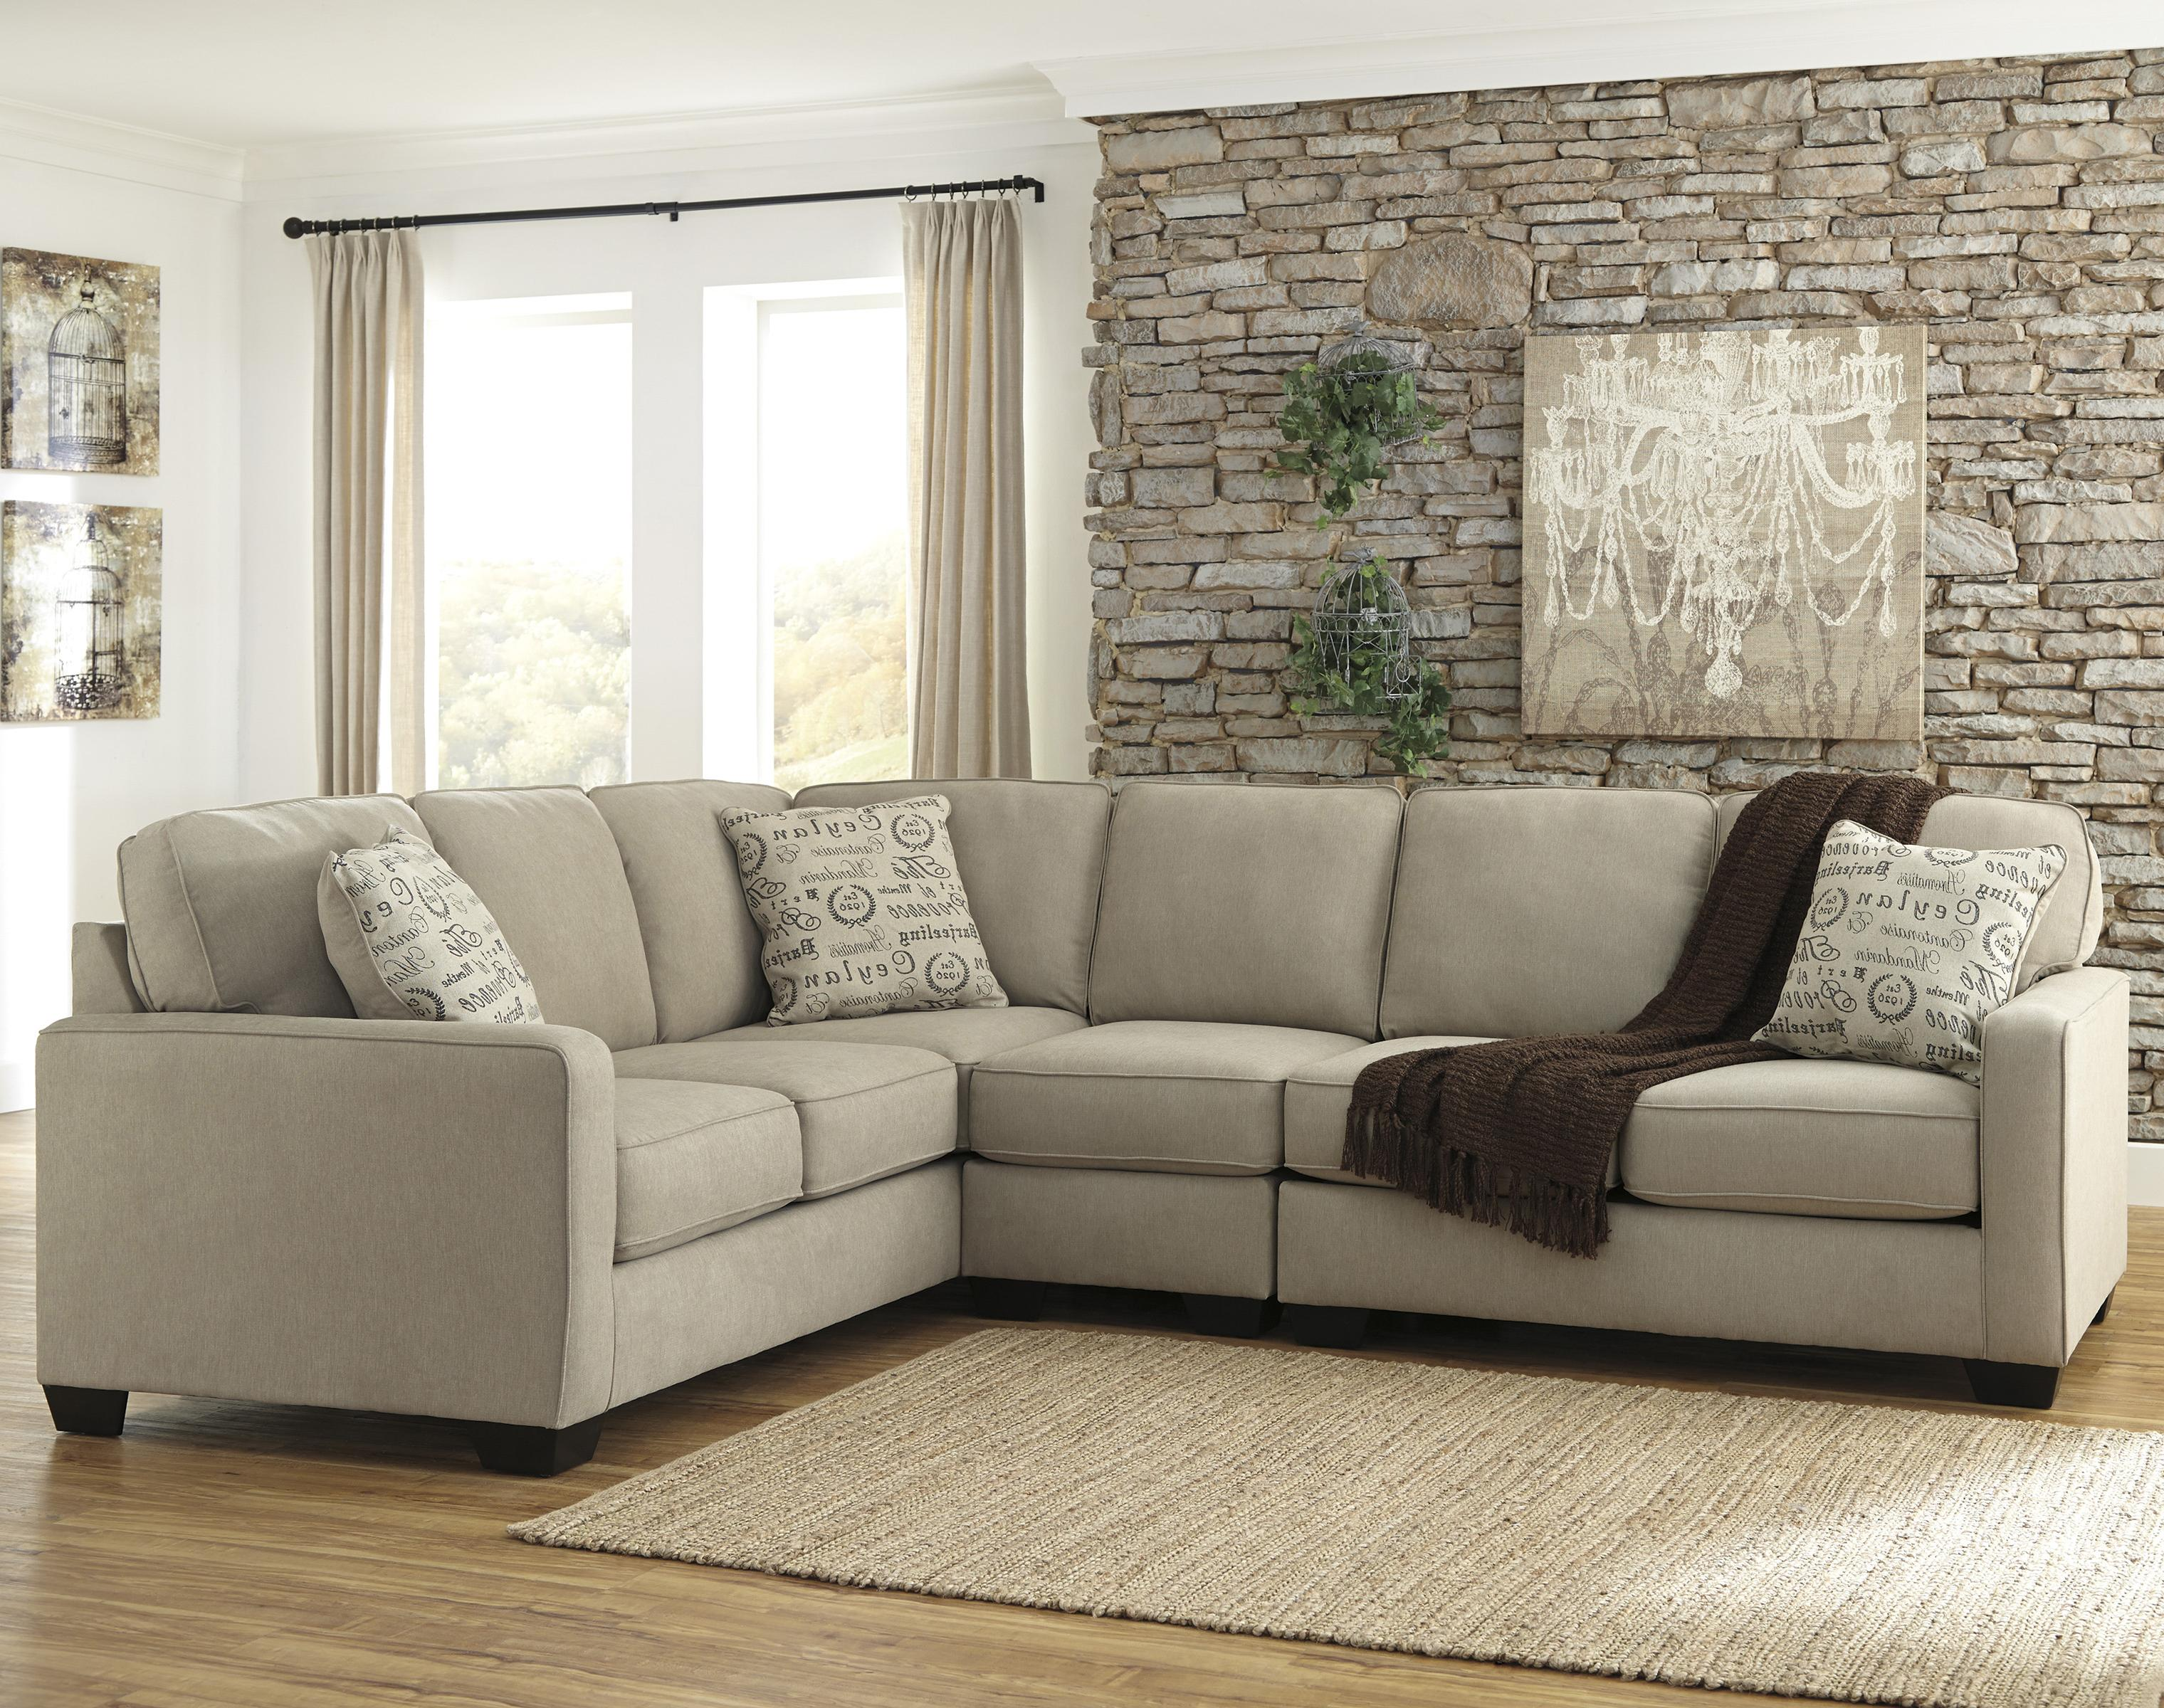 Alenya - Quartz 3-Piece Sectional with Right Loveseat by Signature Design by Ashley at Catalog Outlet